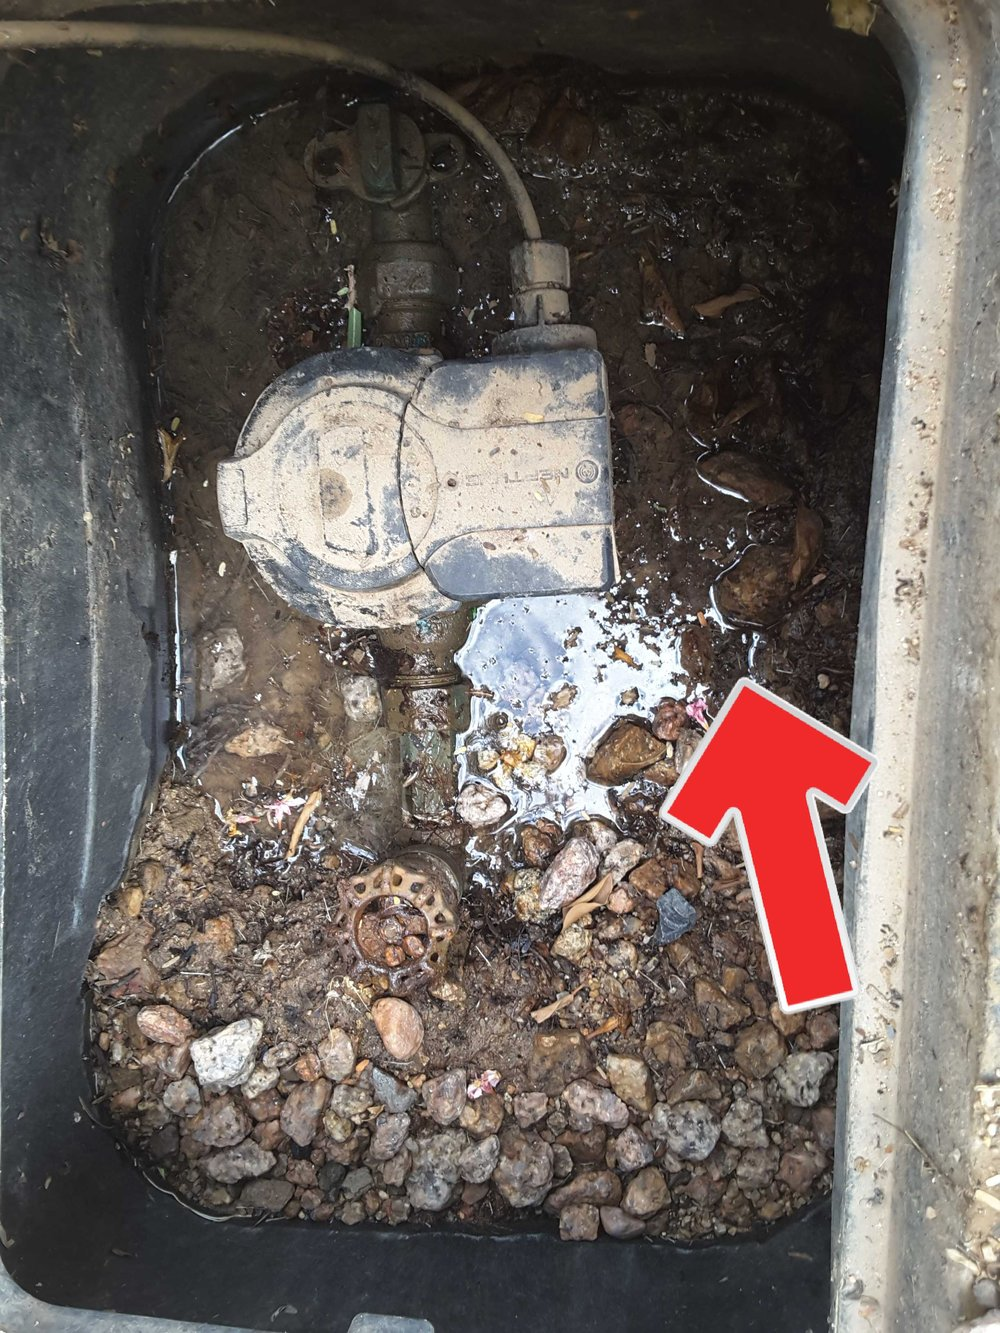 One of the most common places to find a water supply leak is at the water meter. It could go on for months before the average home owner wonders why their bill keeps getting higher.